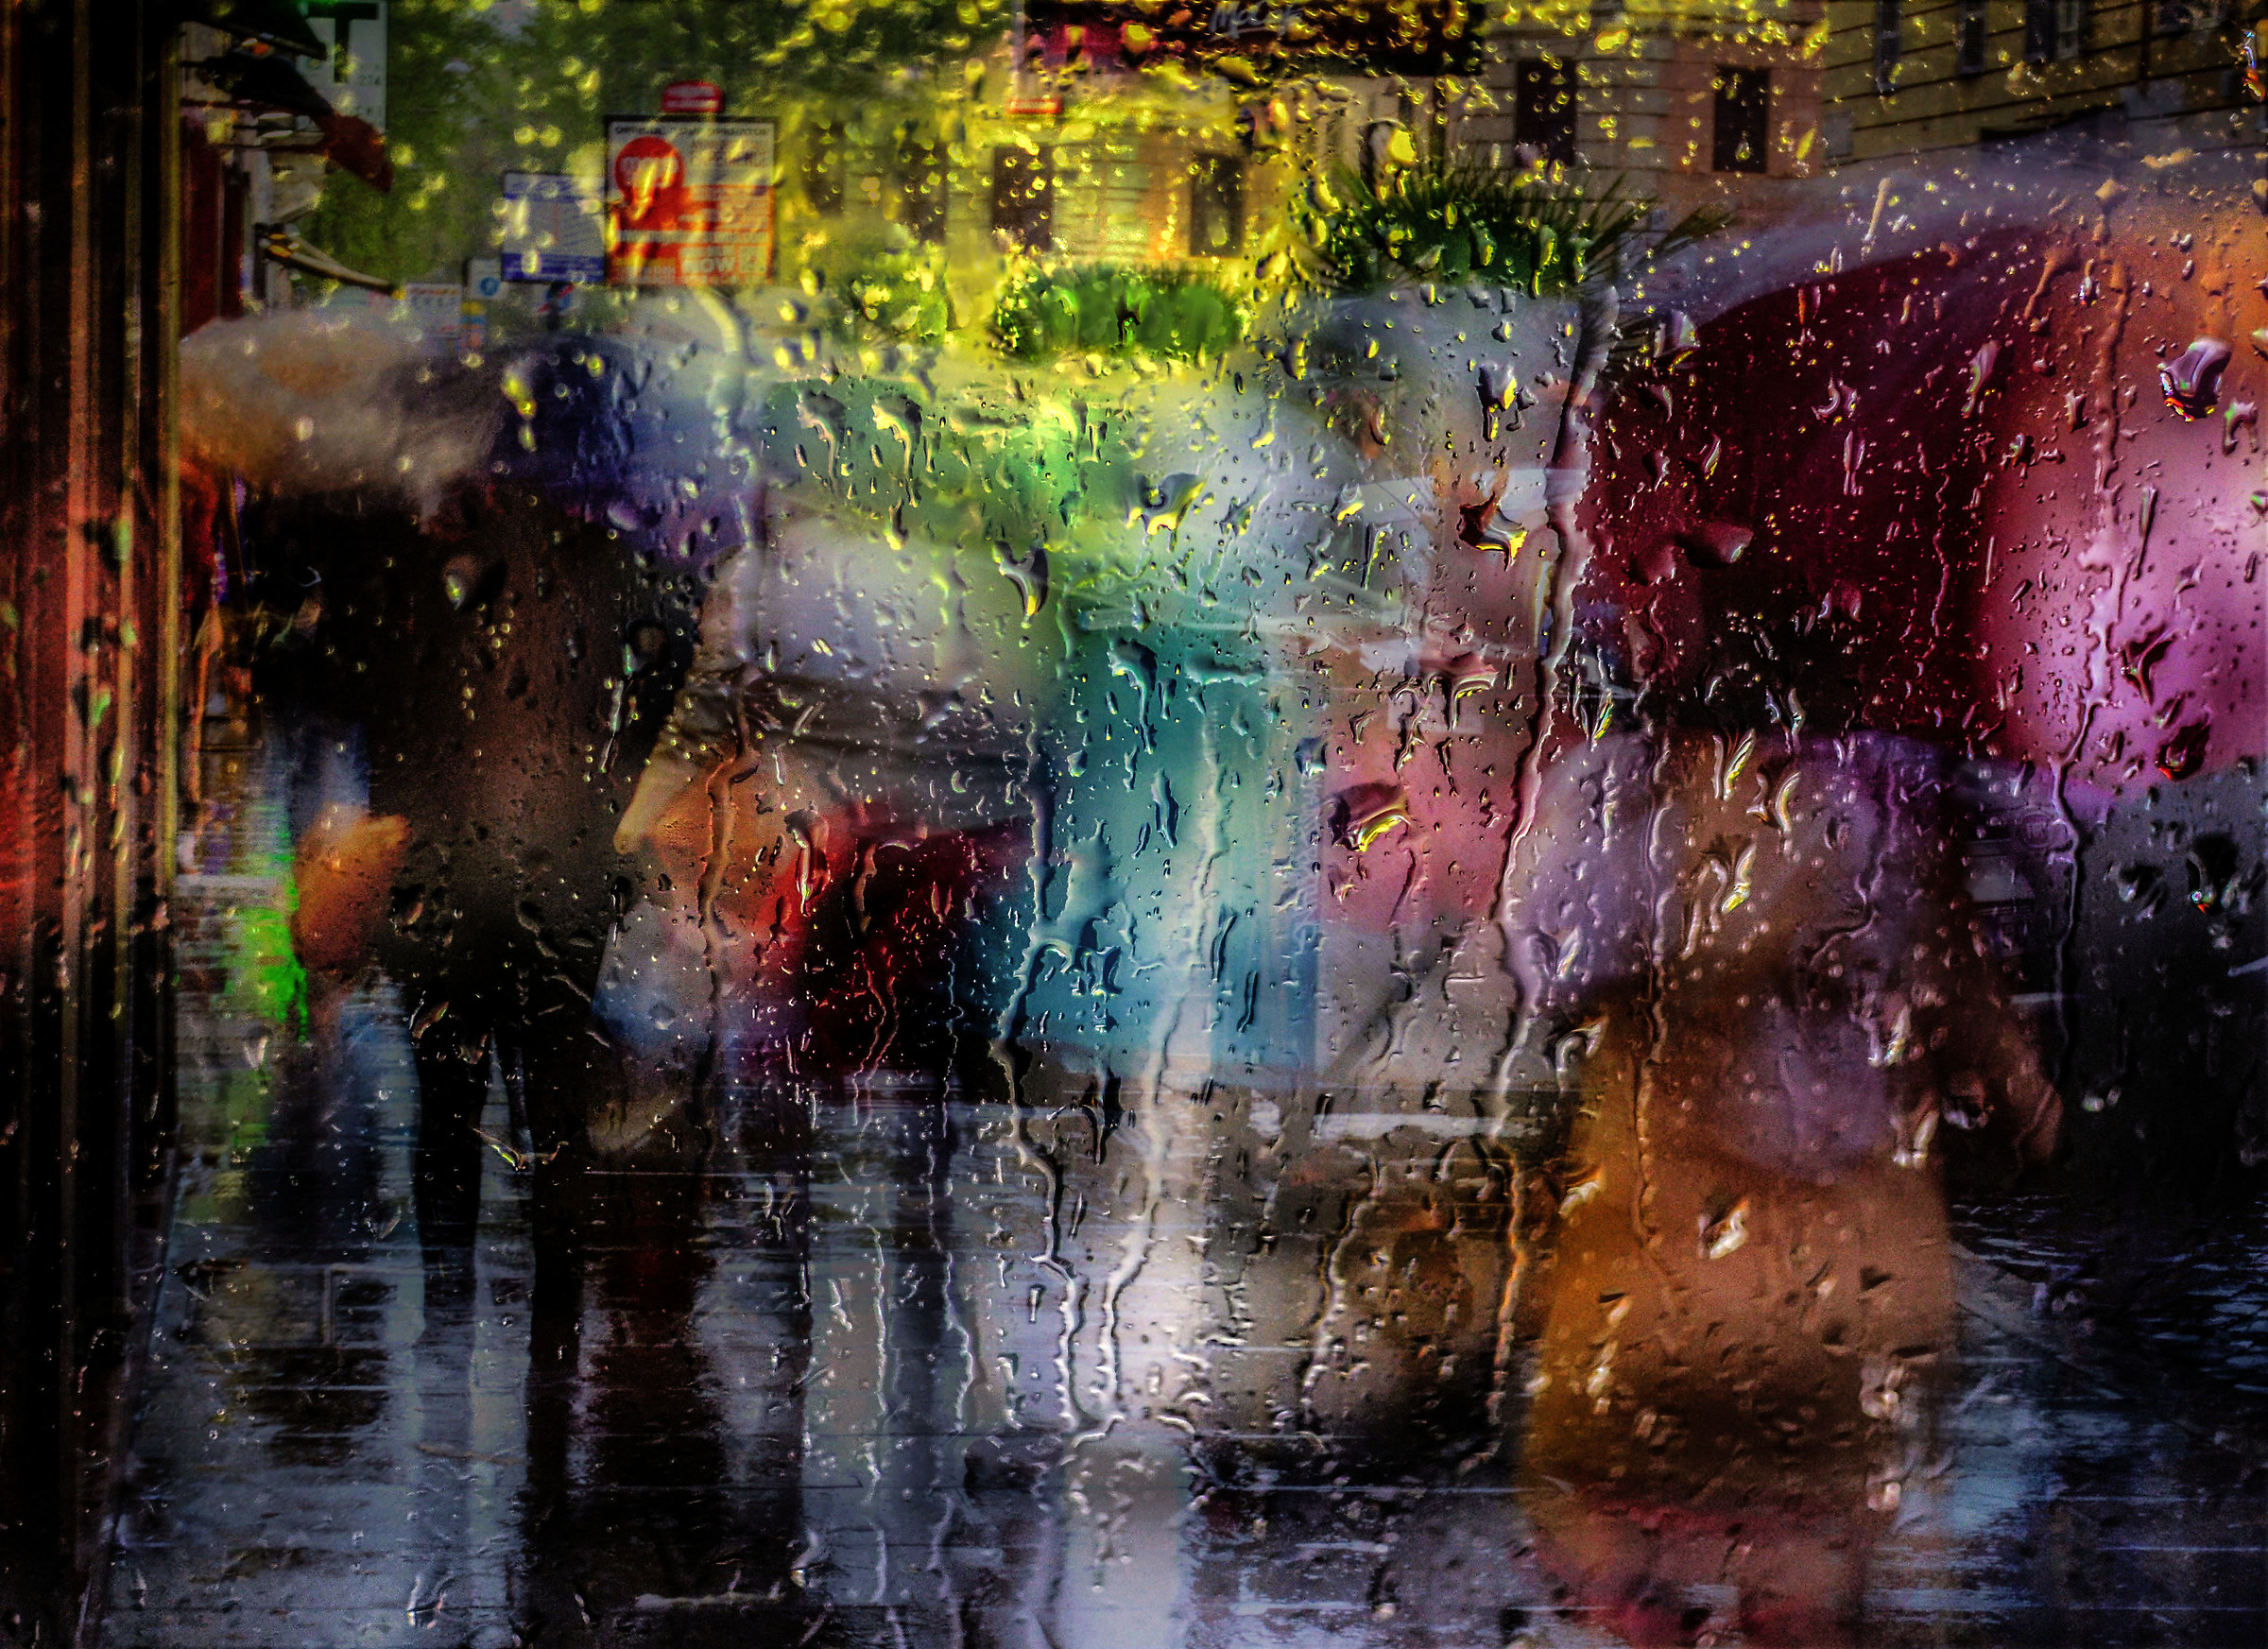 ... an afternoon in the rain...